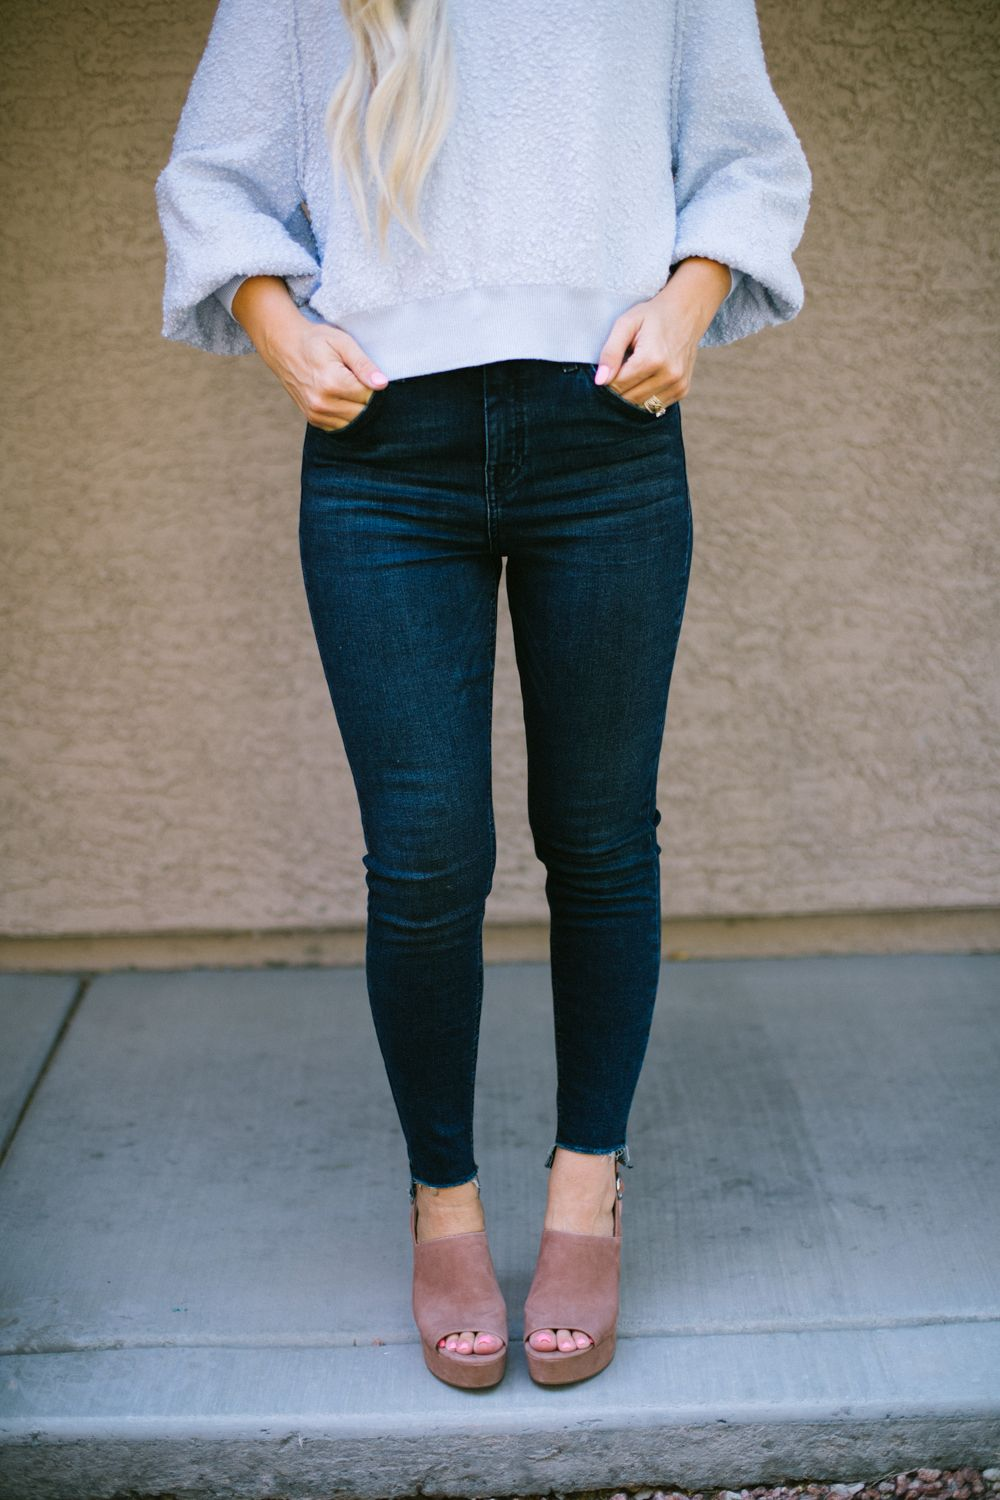 65c8644bd276 Casual Summer to Fall Outfit featured by popular Las Vegas life and style  bloggers